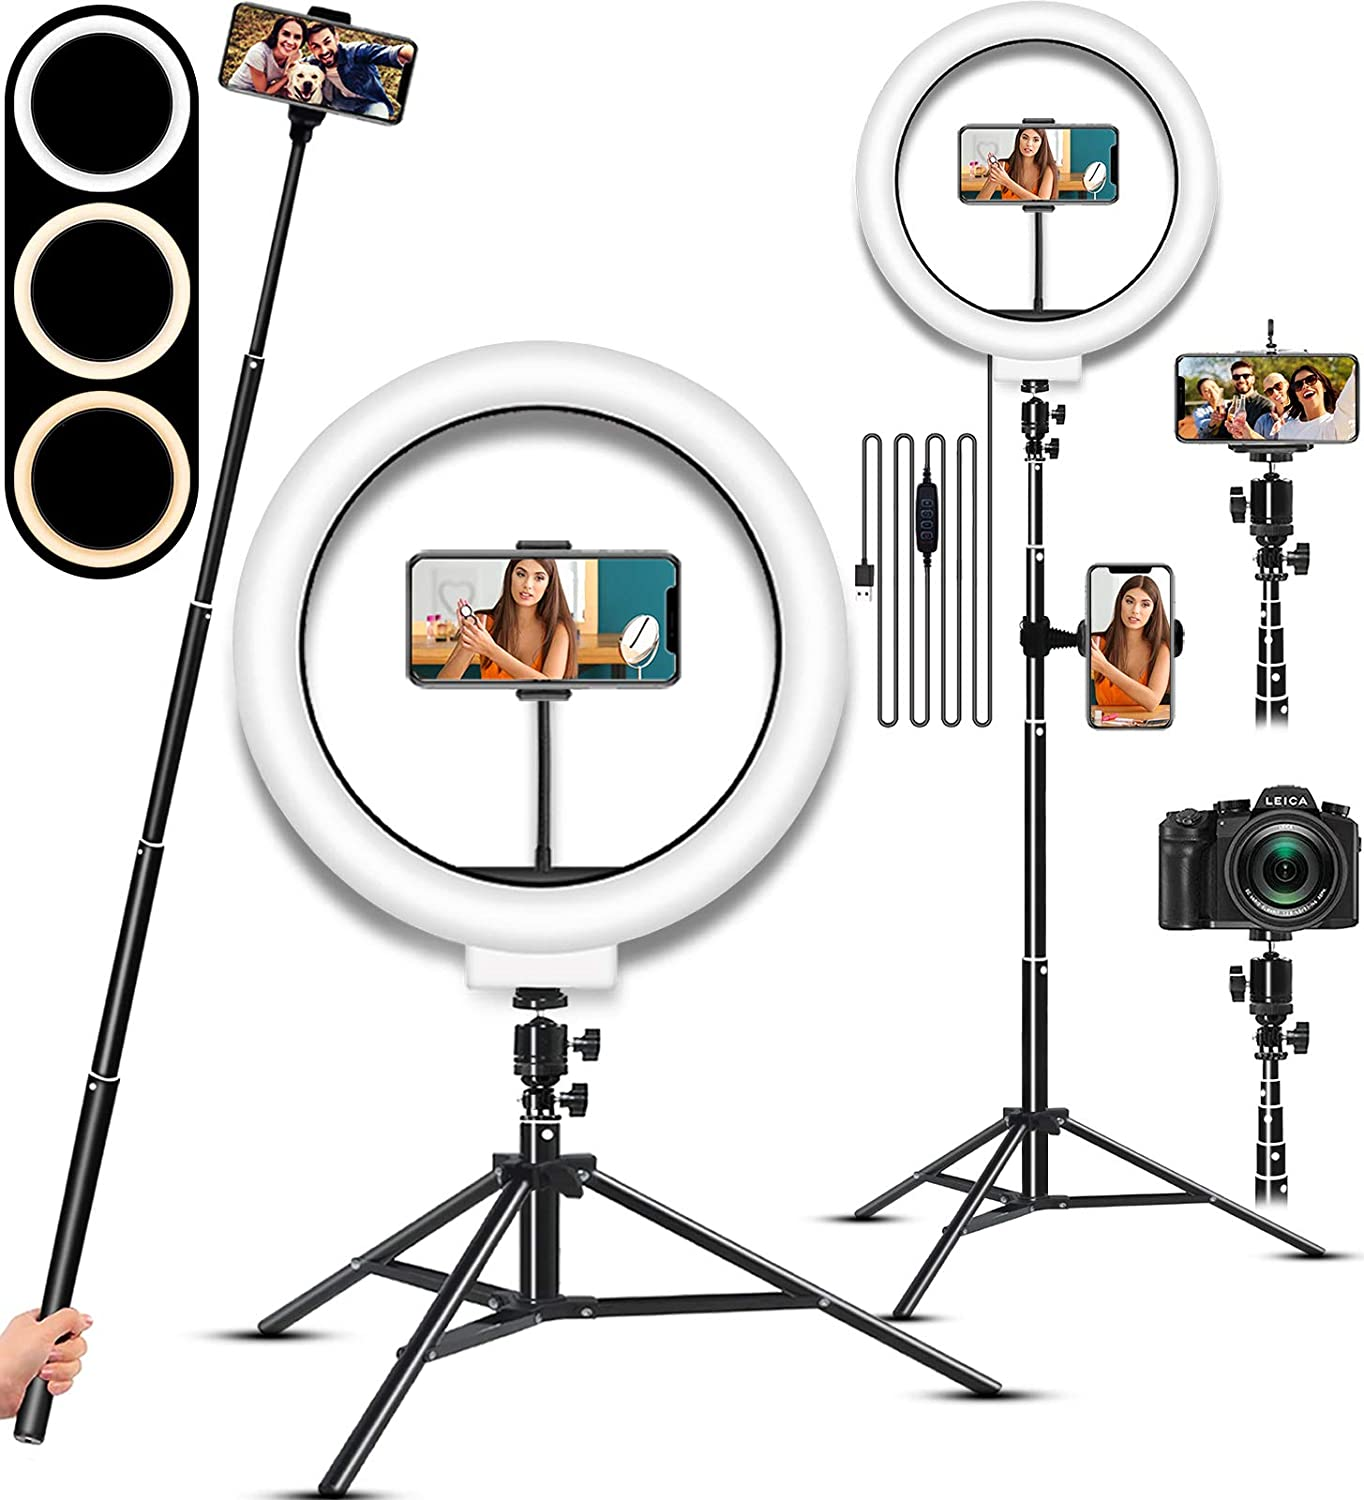 Selfie Ring Light, LED Light Ring with Stand, Circle Light for Makeup/Live Stream, Desktop Camera LED Ringlight with Tripod and Phone Holder Ring Lights for Photography/YouTube/Video Recording/Vlogs